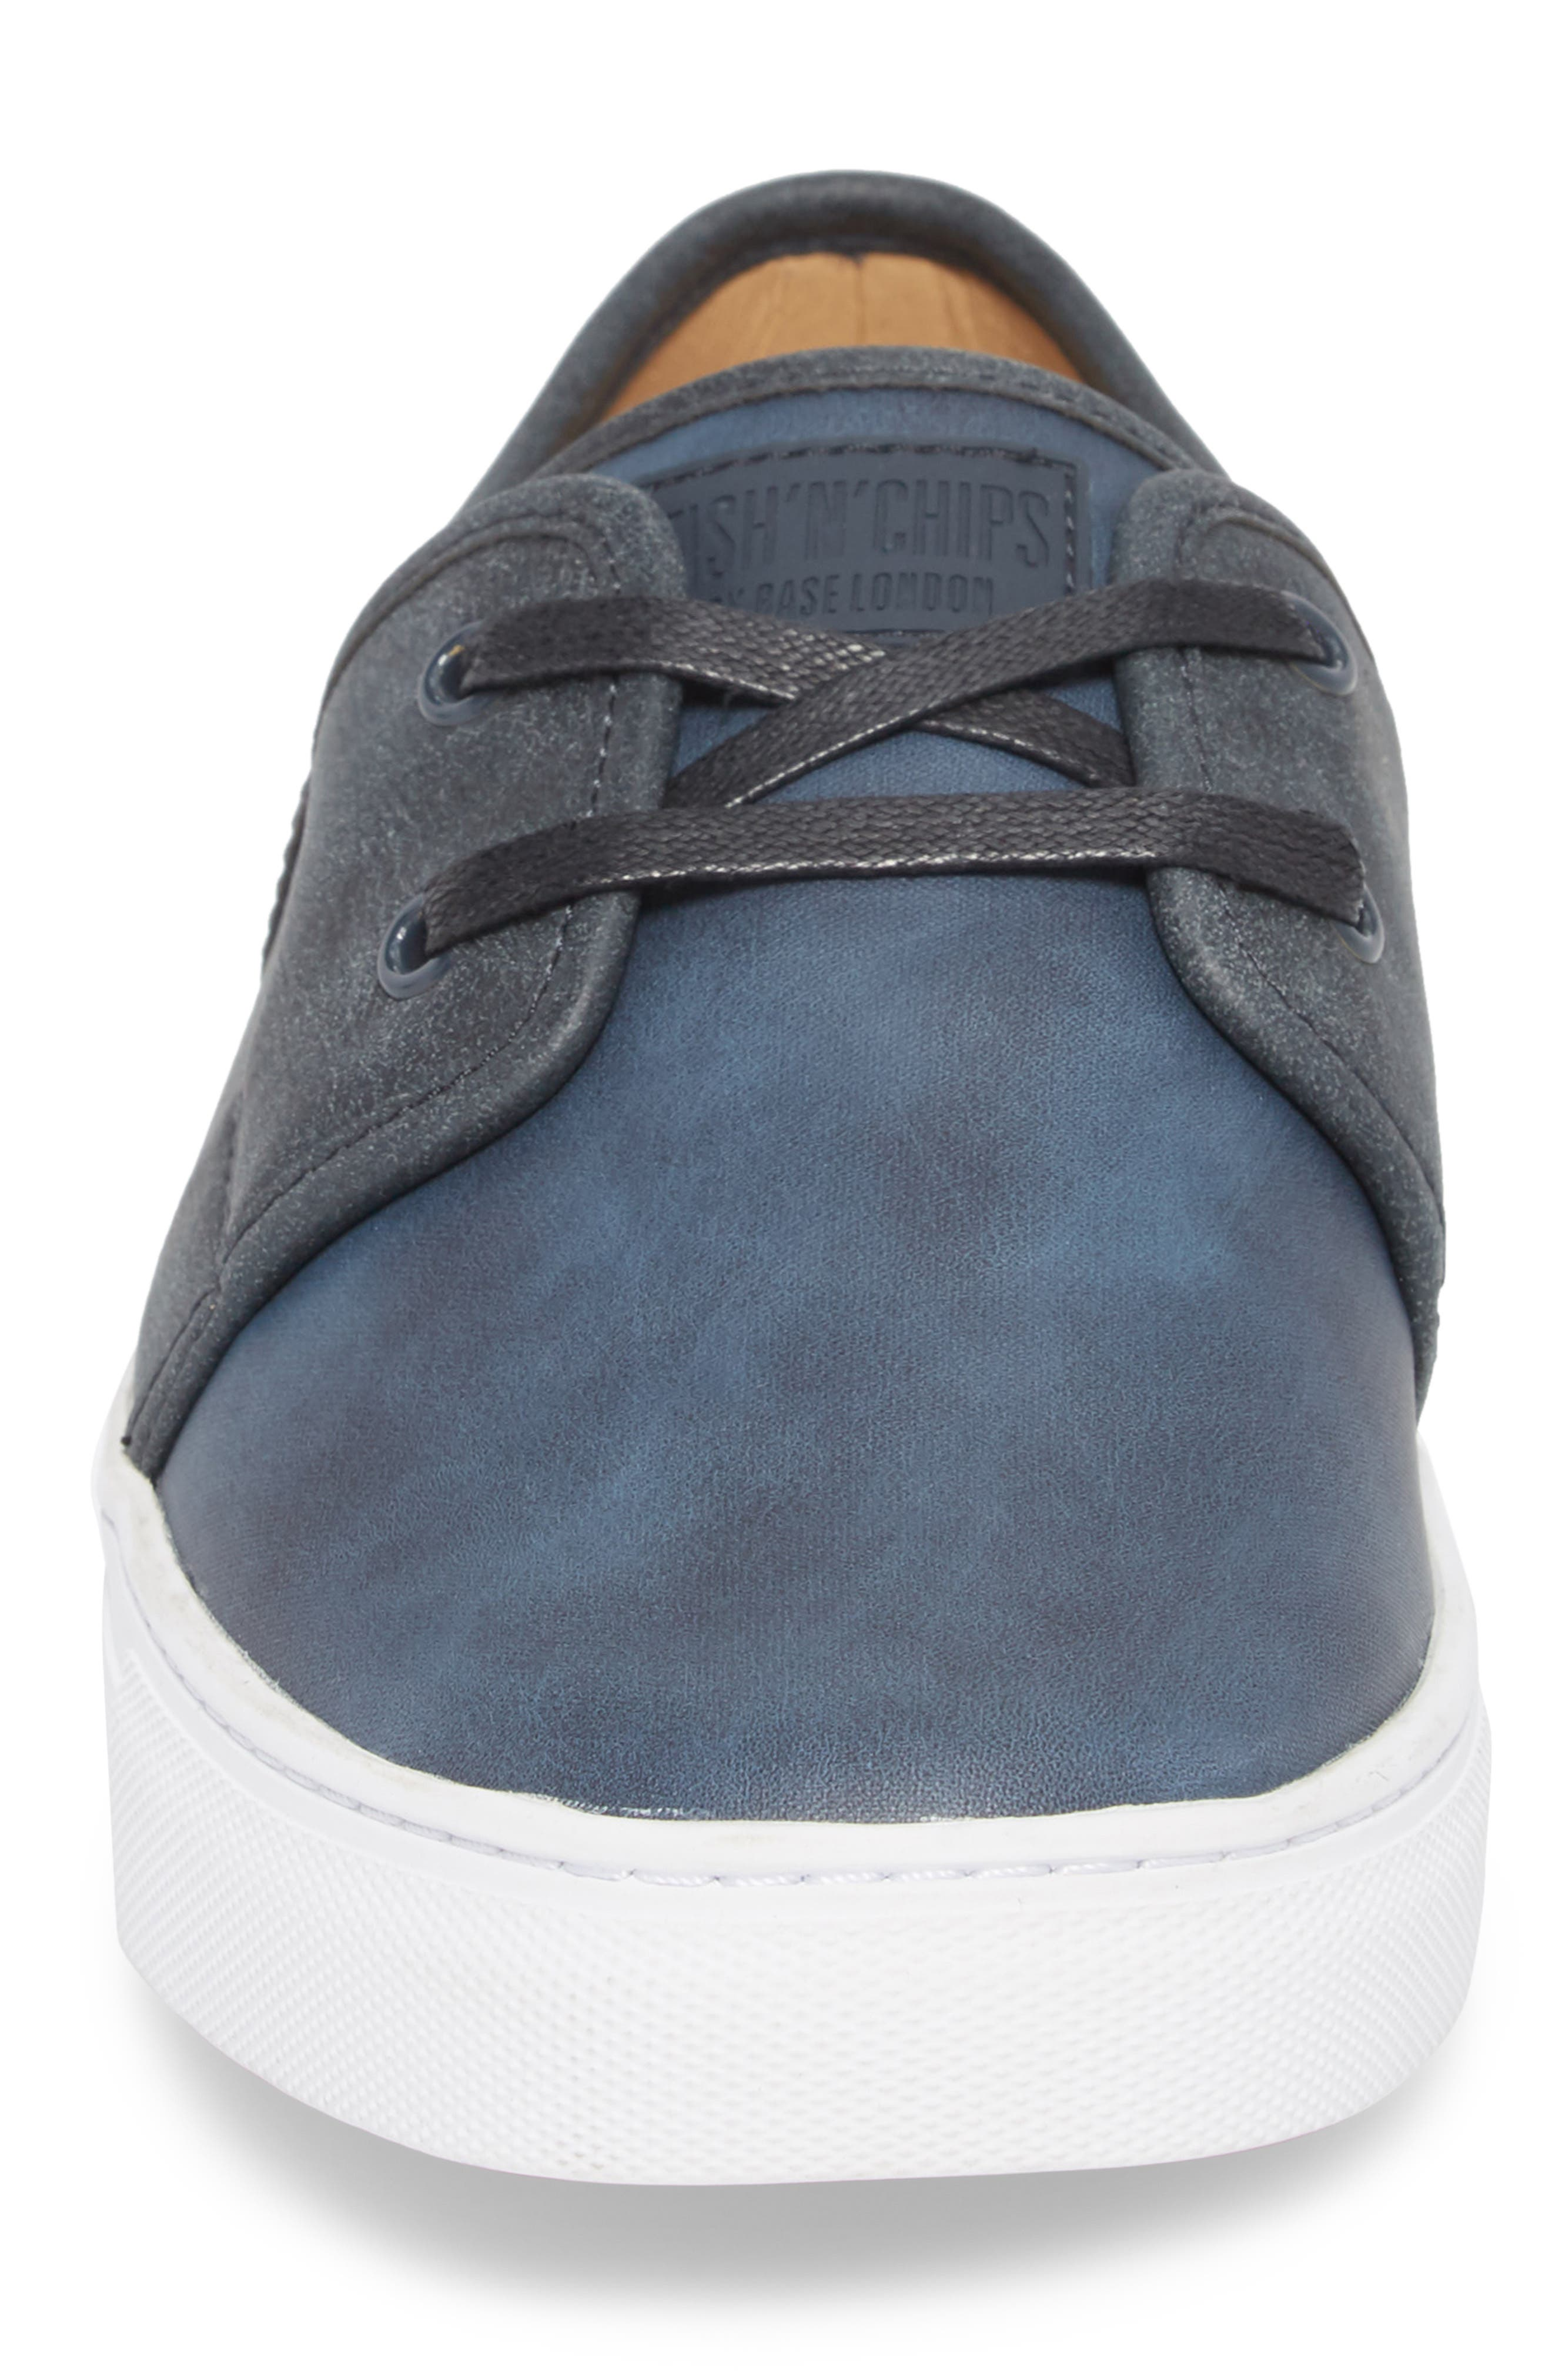 Toronto Low Top Sneaker,                             Alternate thumbnail 4, color,                             Navy Faux Suede